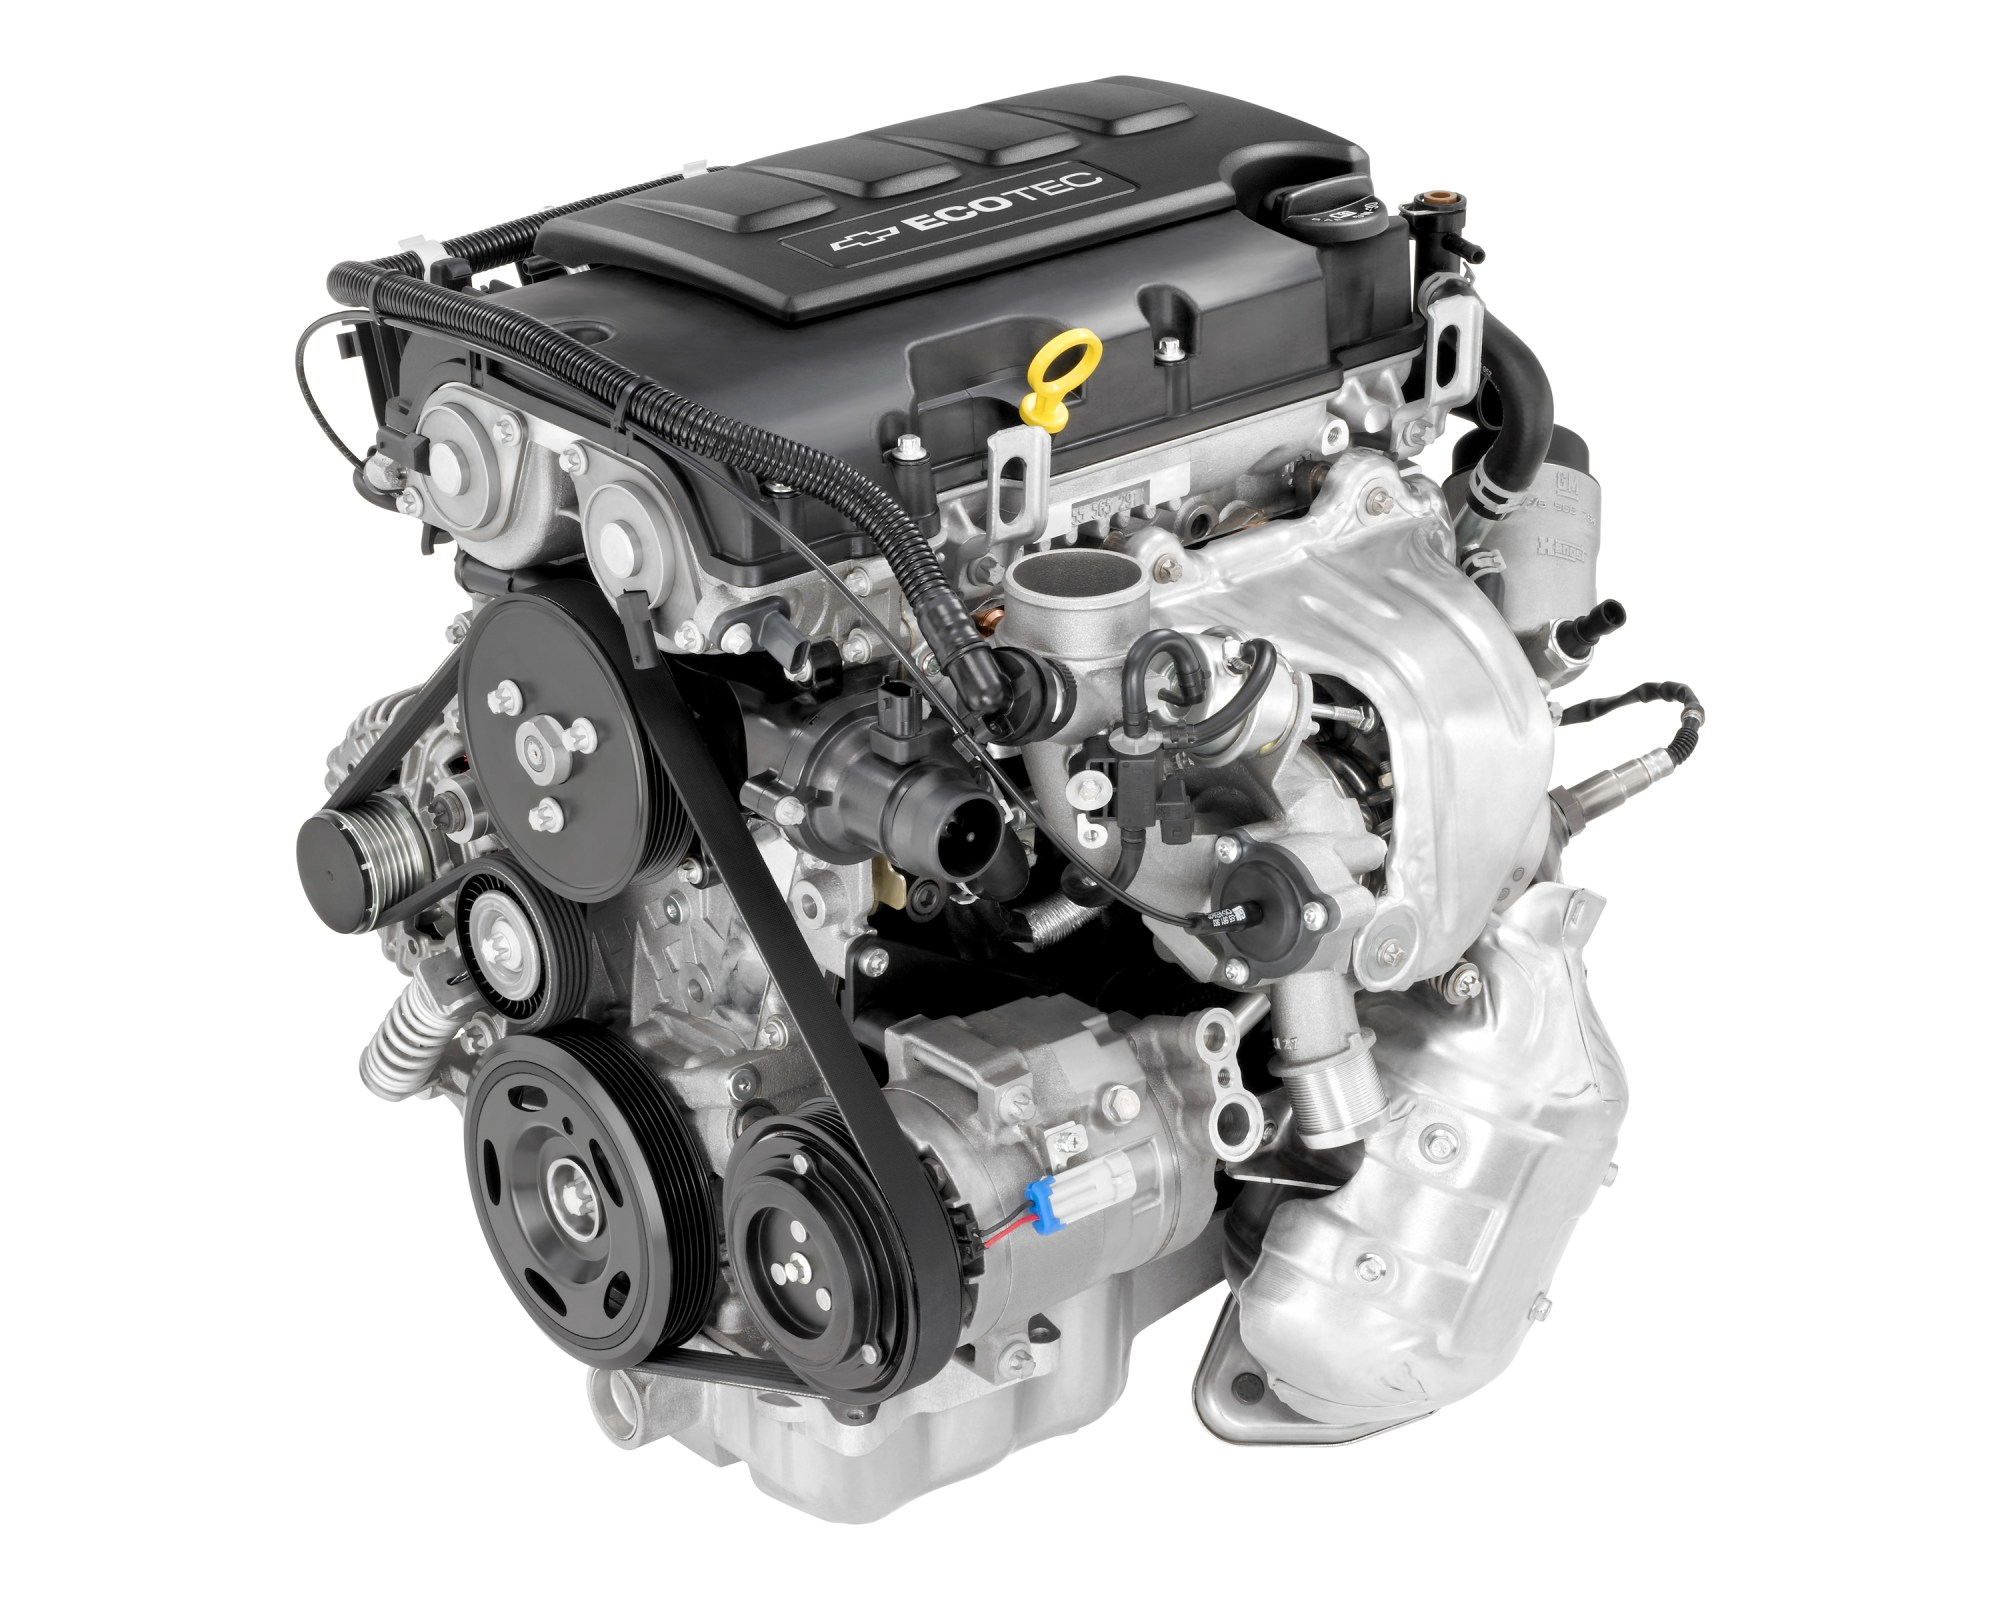 hight resolution of the hydra matic 6t40 automatic transmission is part of gm s family of advanced fuel saving six speed automatic transmissions the 6t40 s wide overall gear